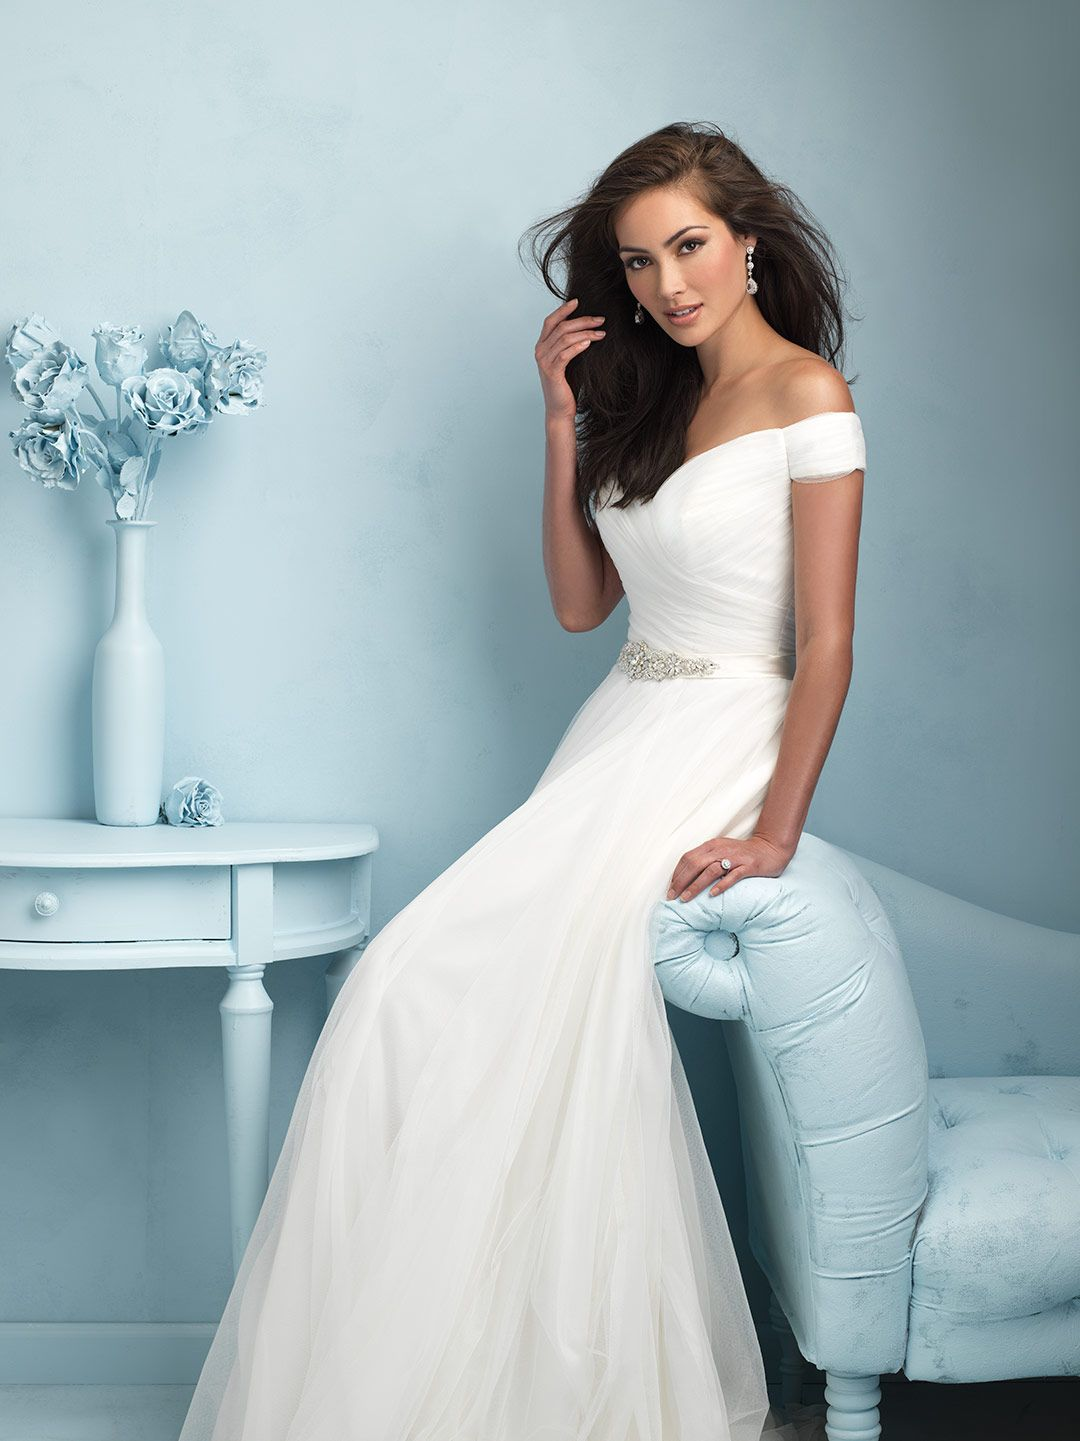 Aurorabridal allurebridals just arrived at aurora unique bridal im having a full on i wish i was still a bride moment thanks to allure bridals spring 2015 where classic elegance is oozing out of their wedding dresses ombrellifo Images